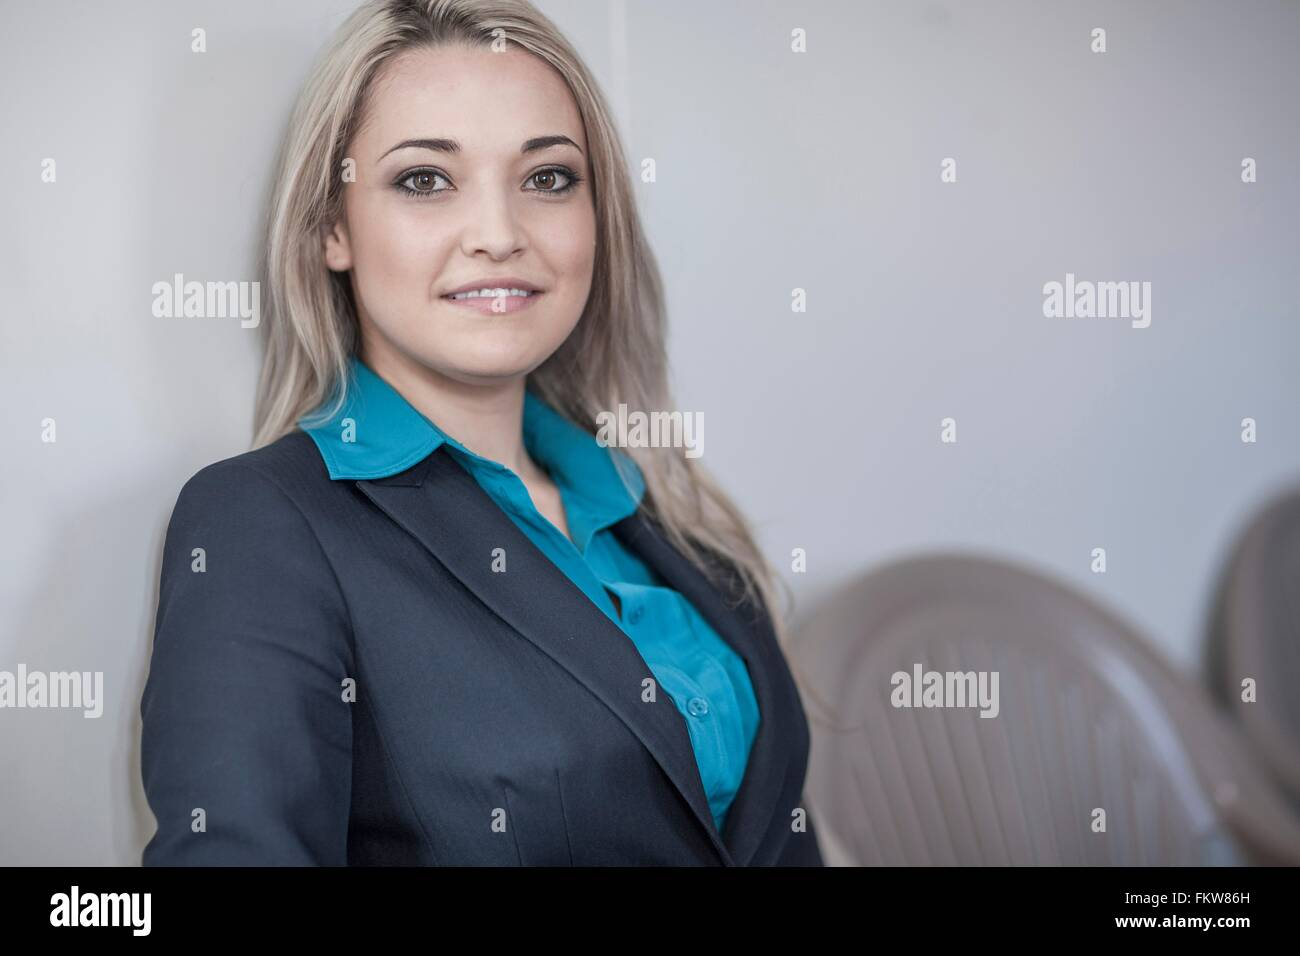 Portrait of young businesswoman avec de longs cheveux blonds sitting in office Photo Stock